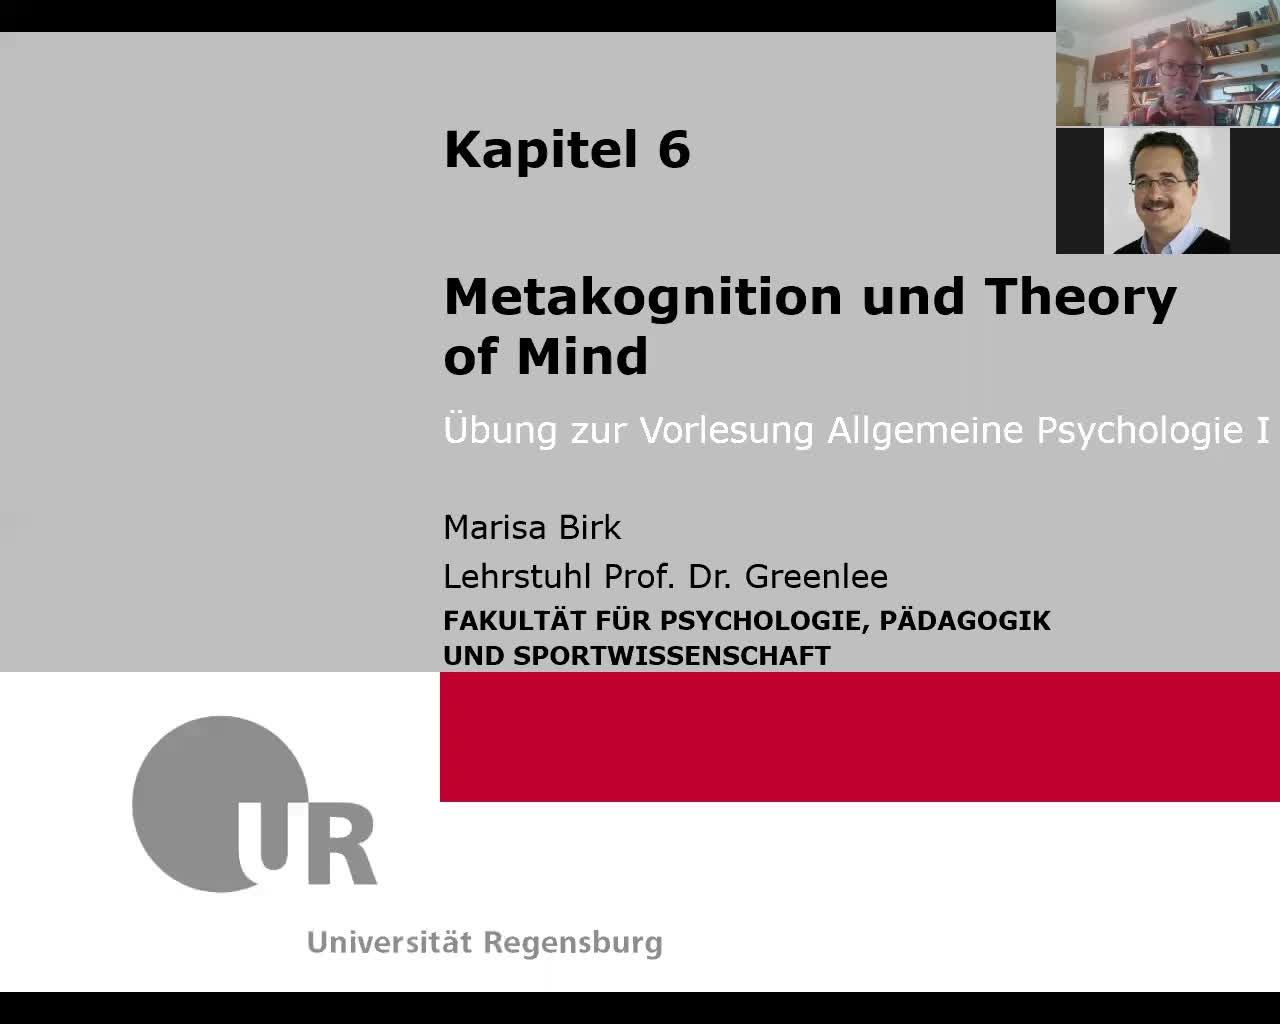 6. Metakognition und Theory of Mind